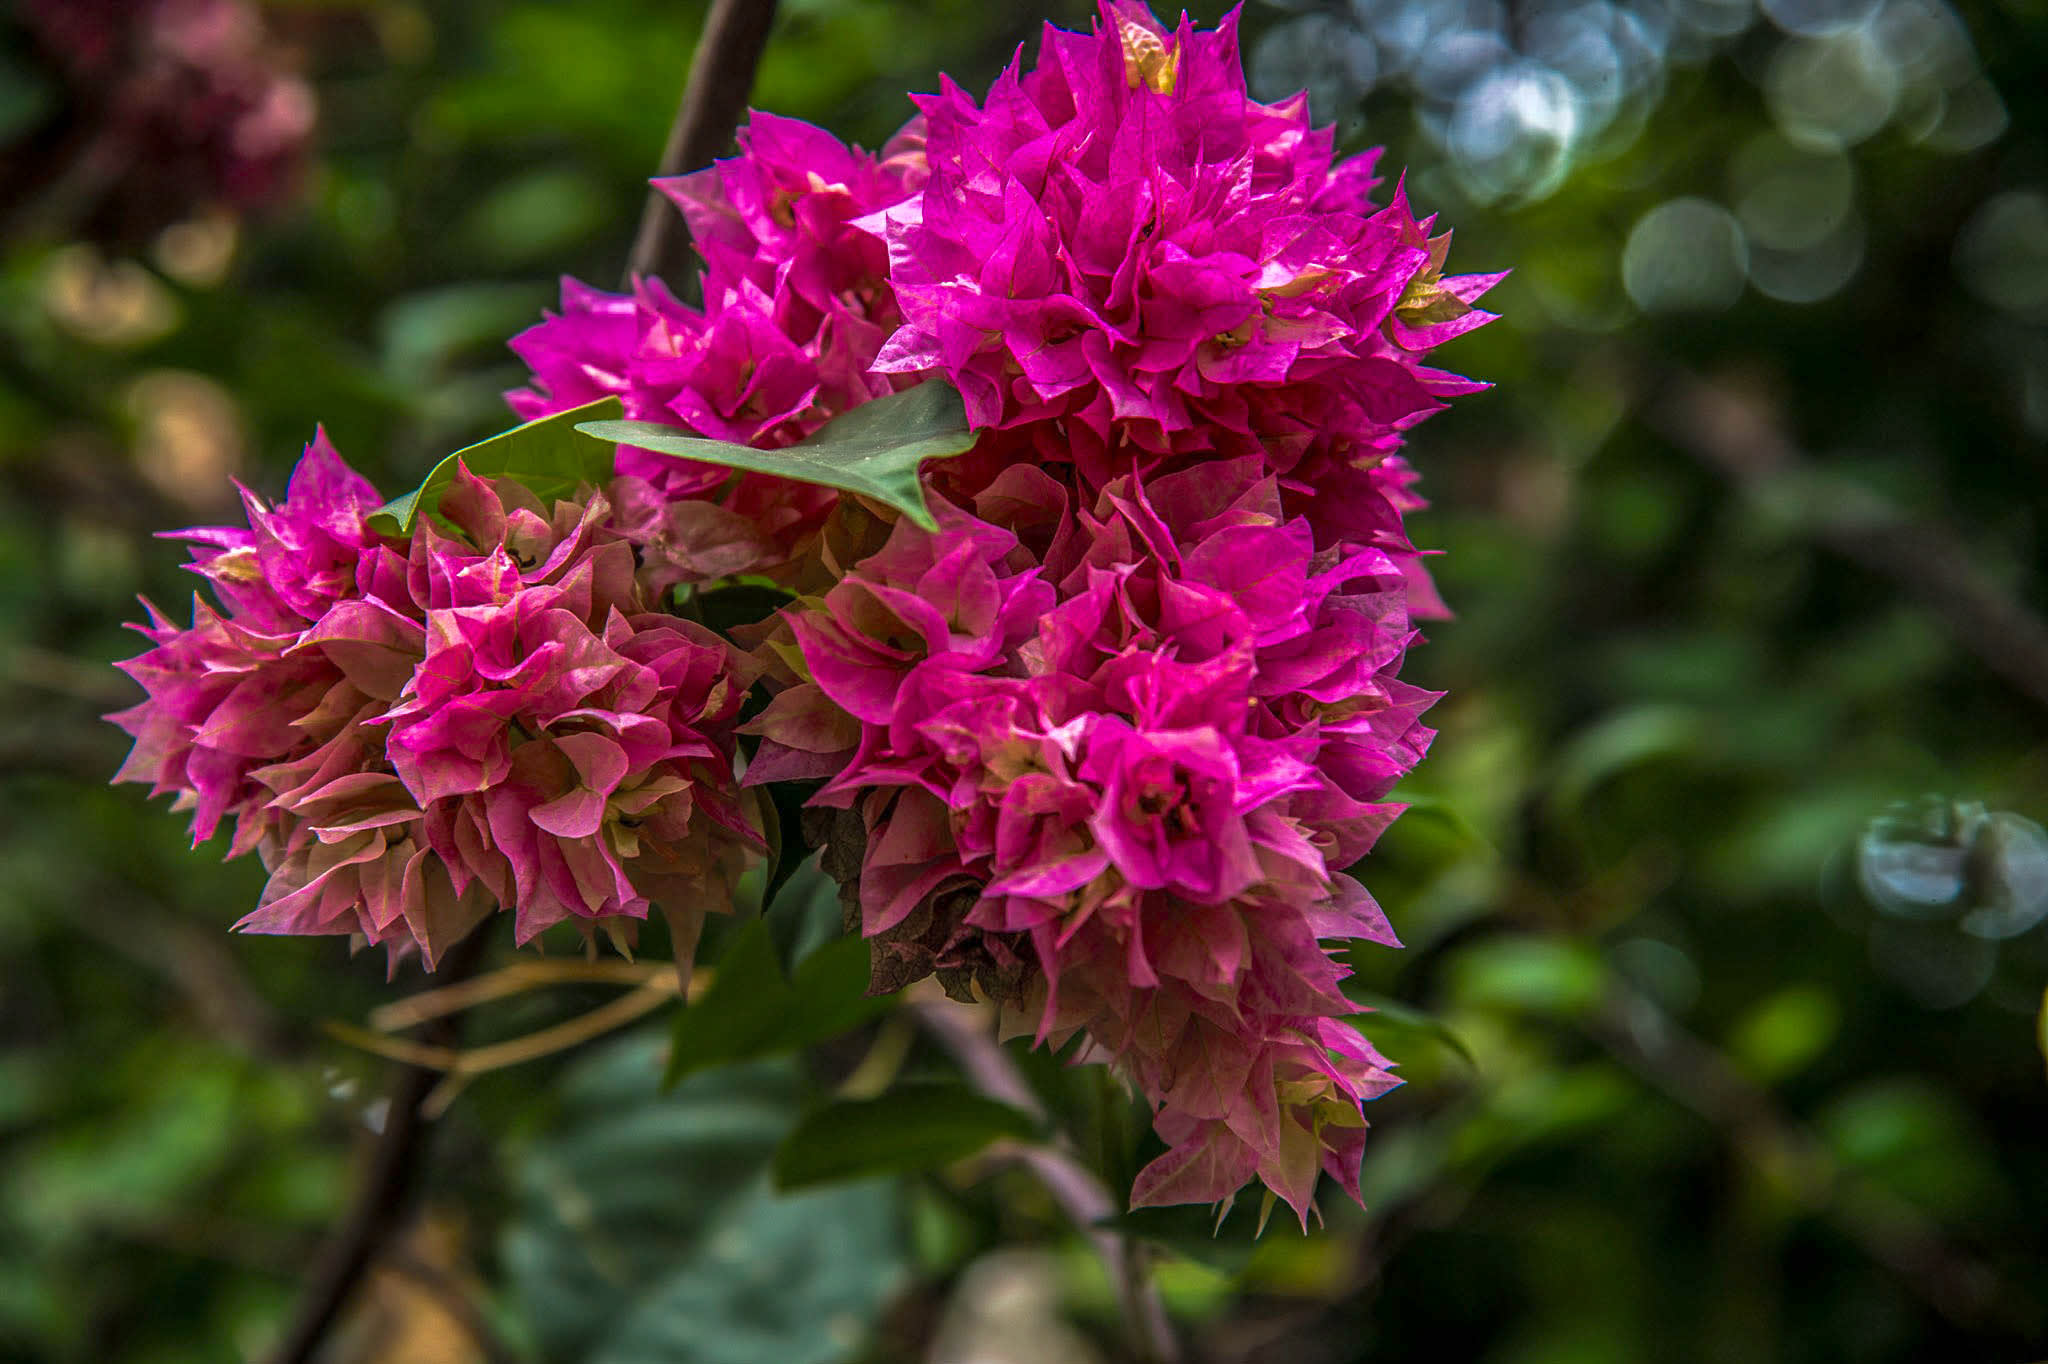 Bougainvillea plants add colour to rooftop garden habitats and are excellent climbers that can grow over walls and other trees